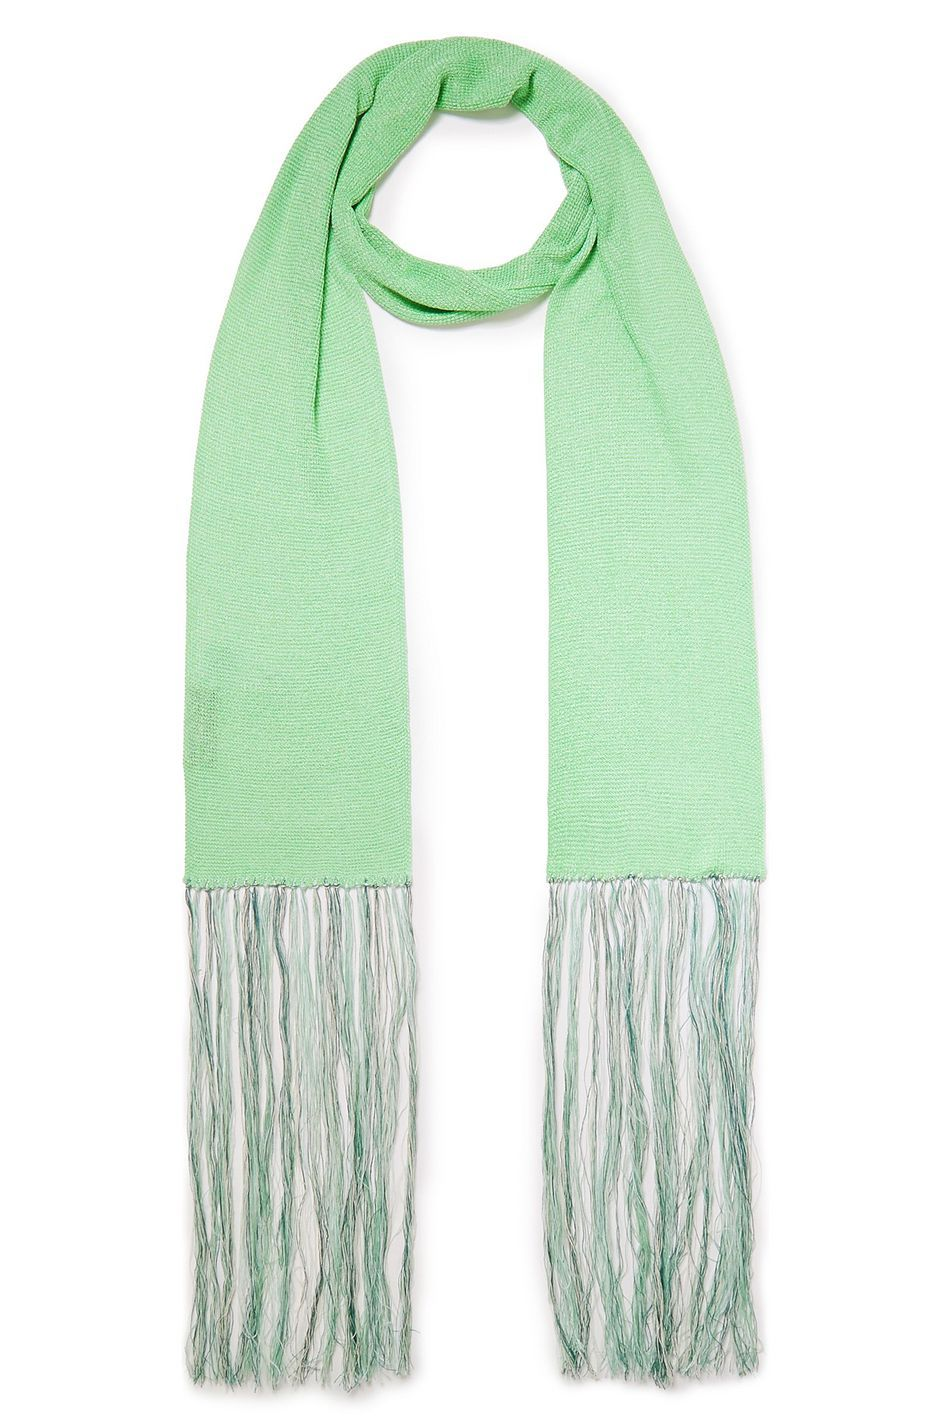 Photo of Light green Fringed knitted scarf | Sale up to 70% off | THE OUTNET | MISSONI